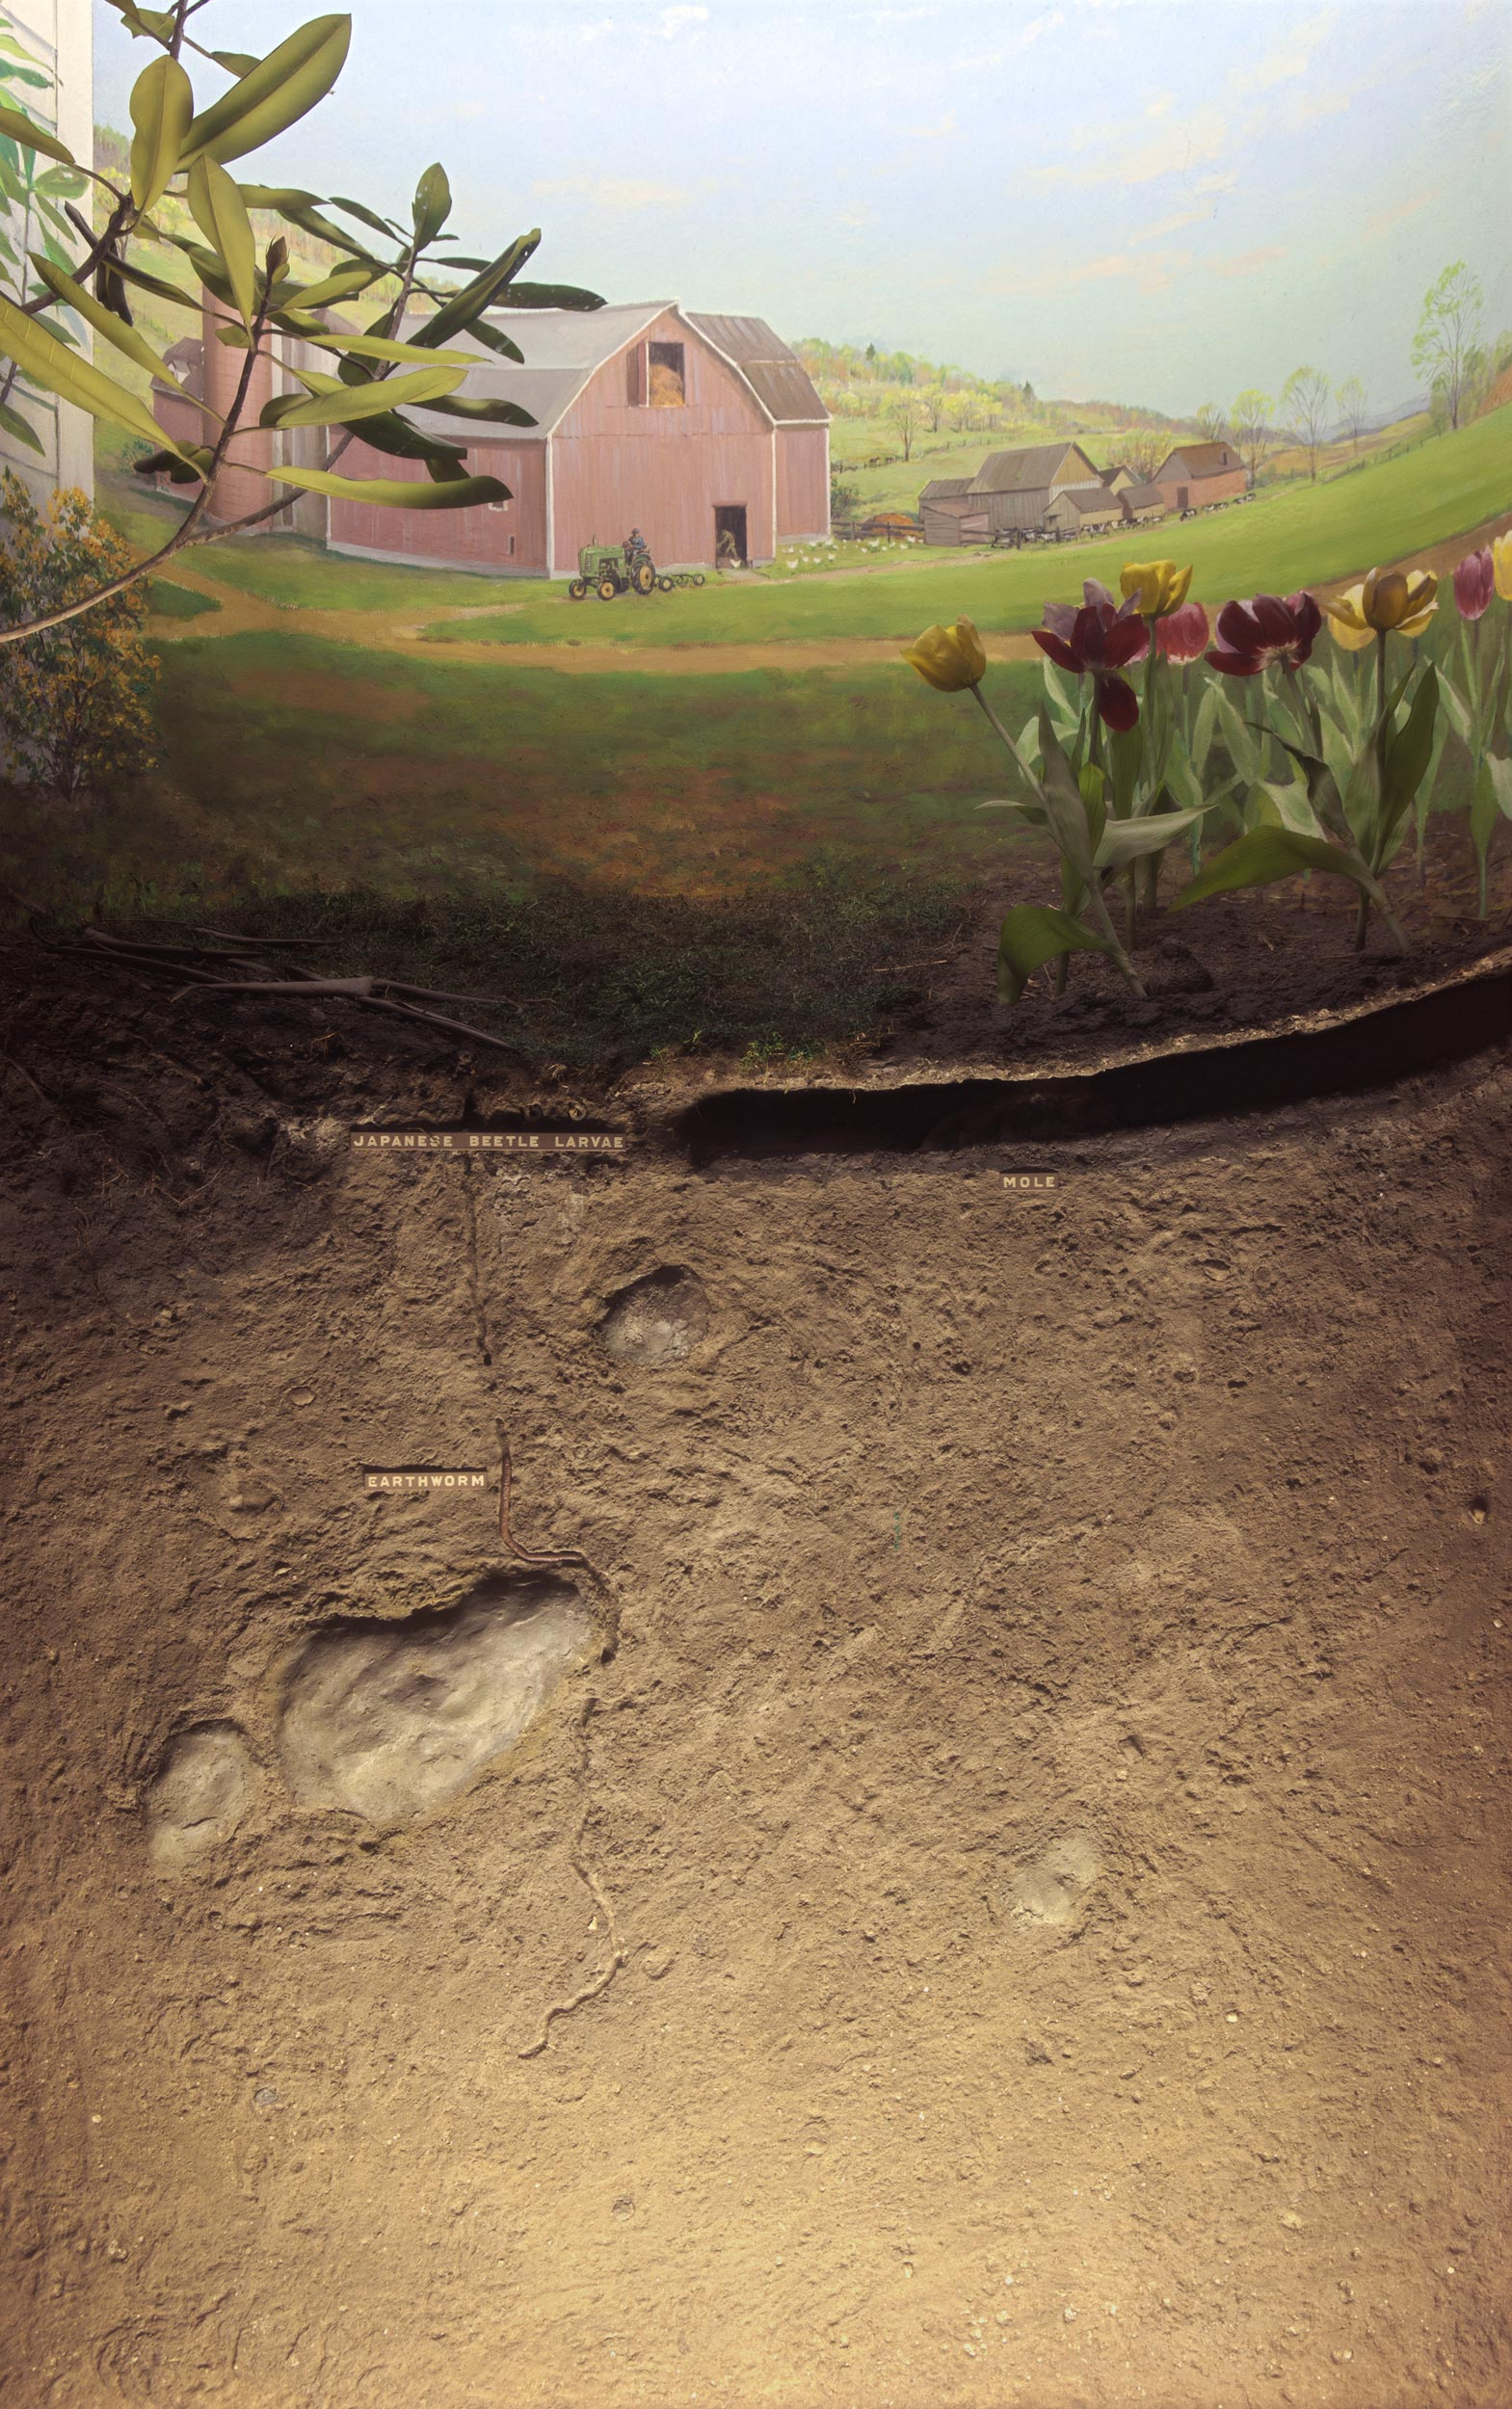 Diorama showing the landscape and cross section of the soil of the farmer's lawn during the spring season.